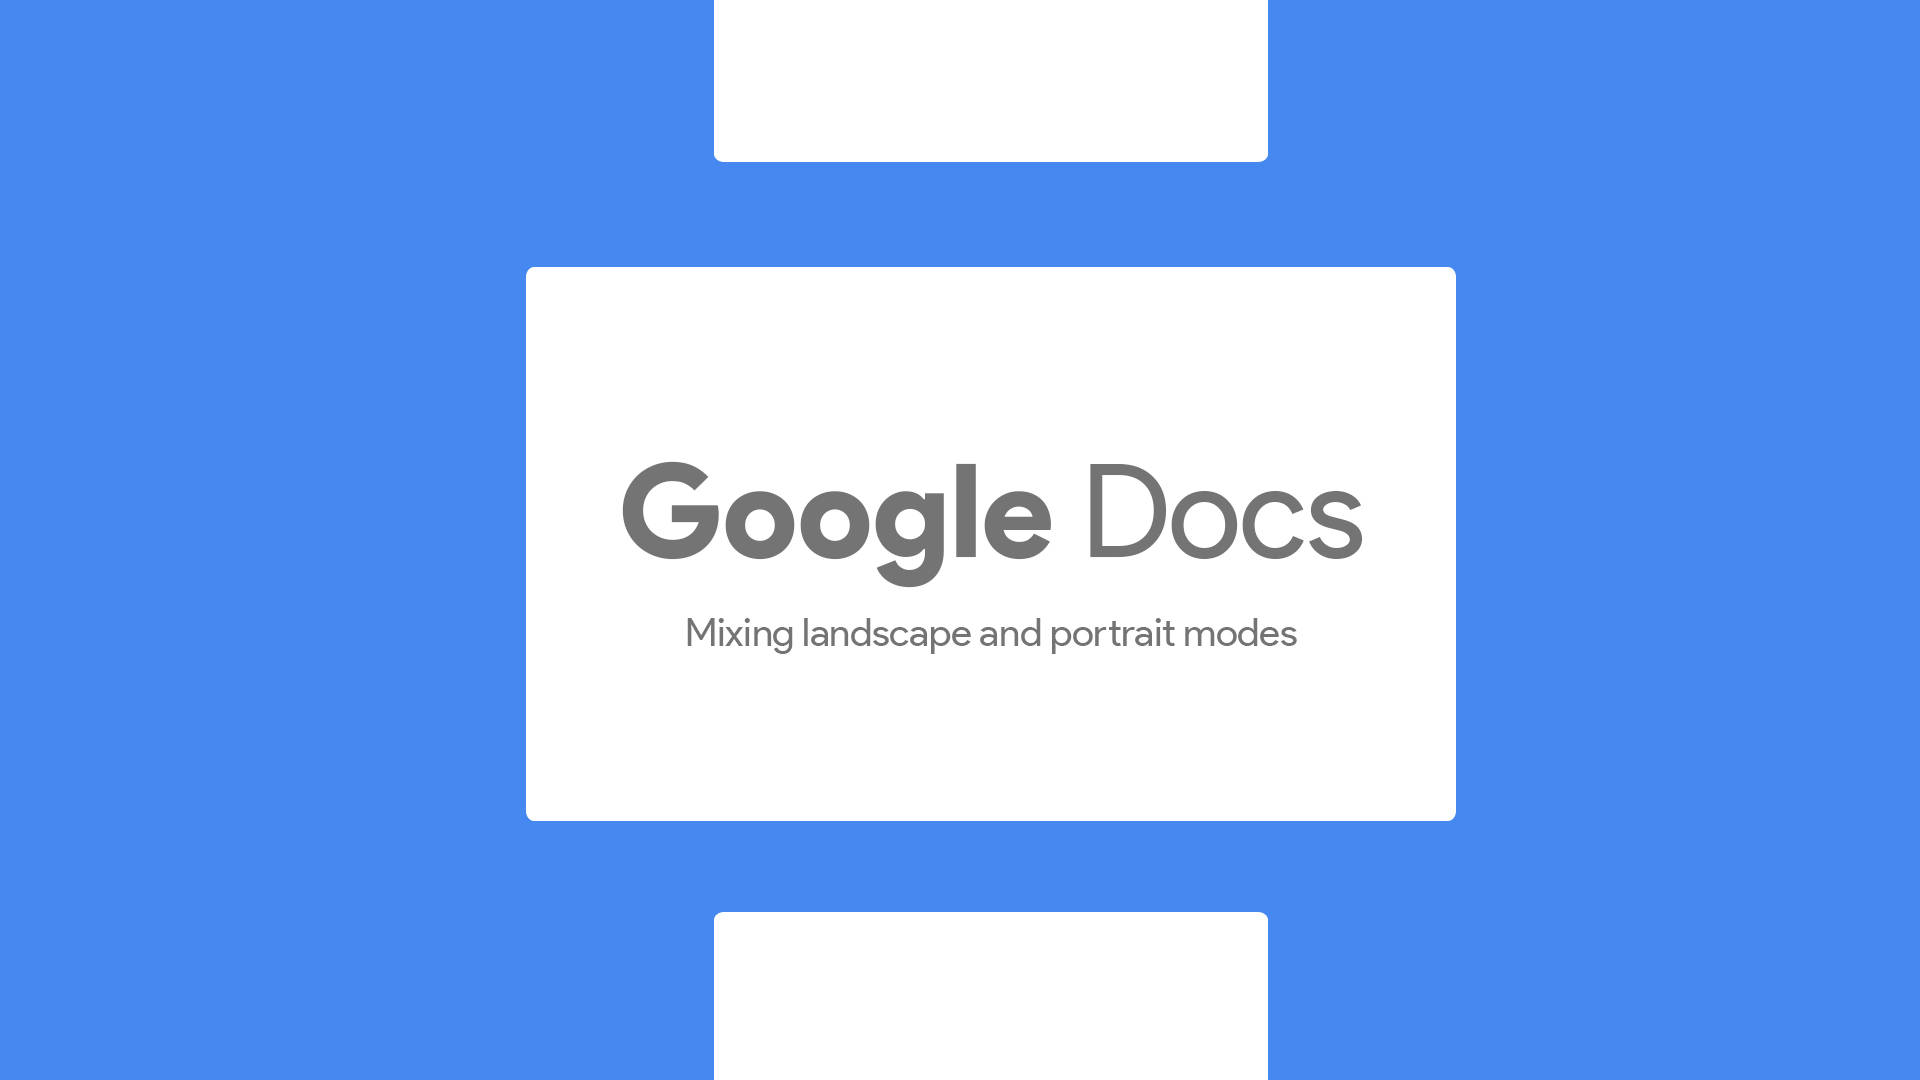 Google Docs will soon let you mix landscape and portrait pages in the same document